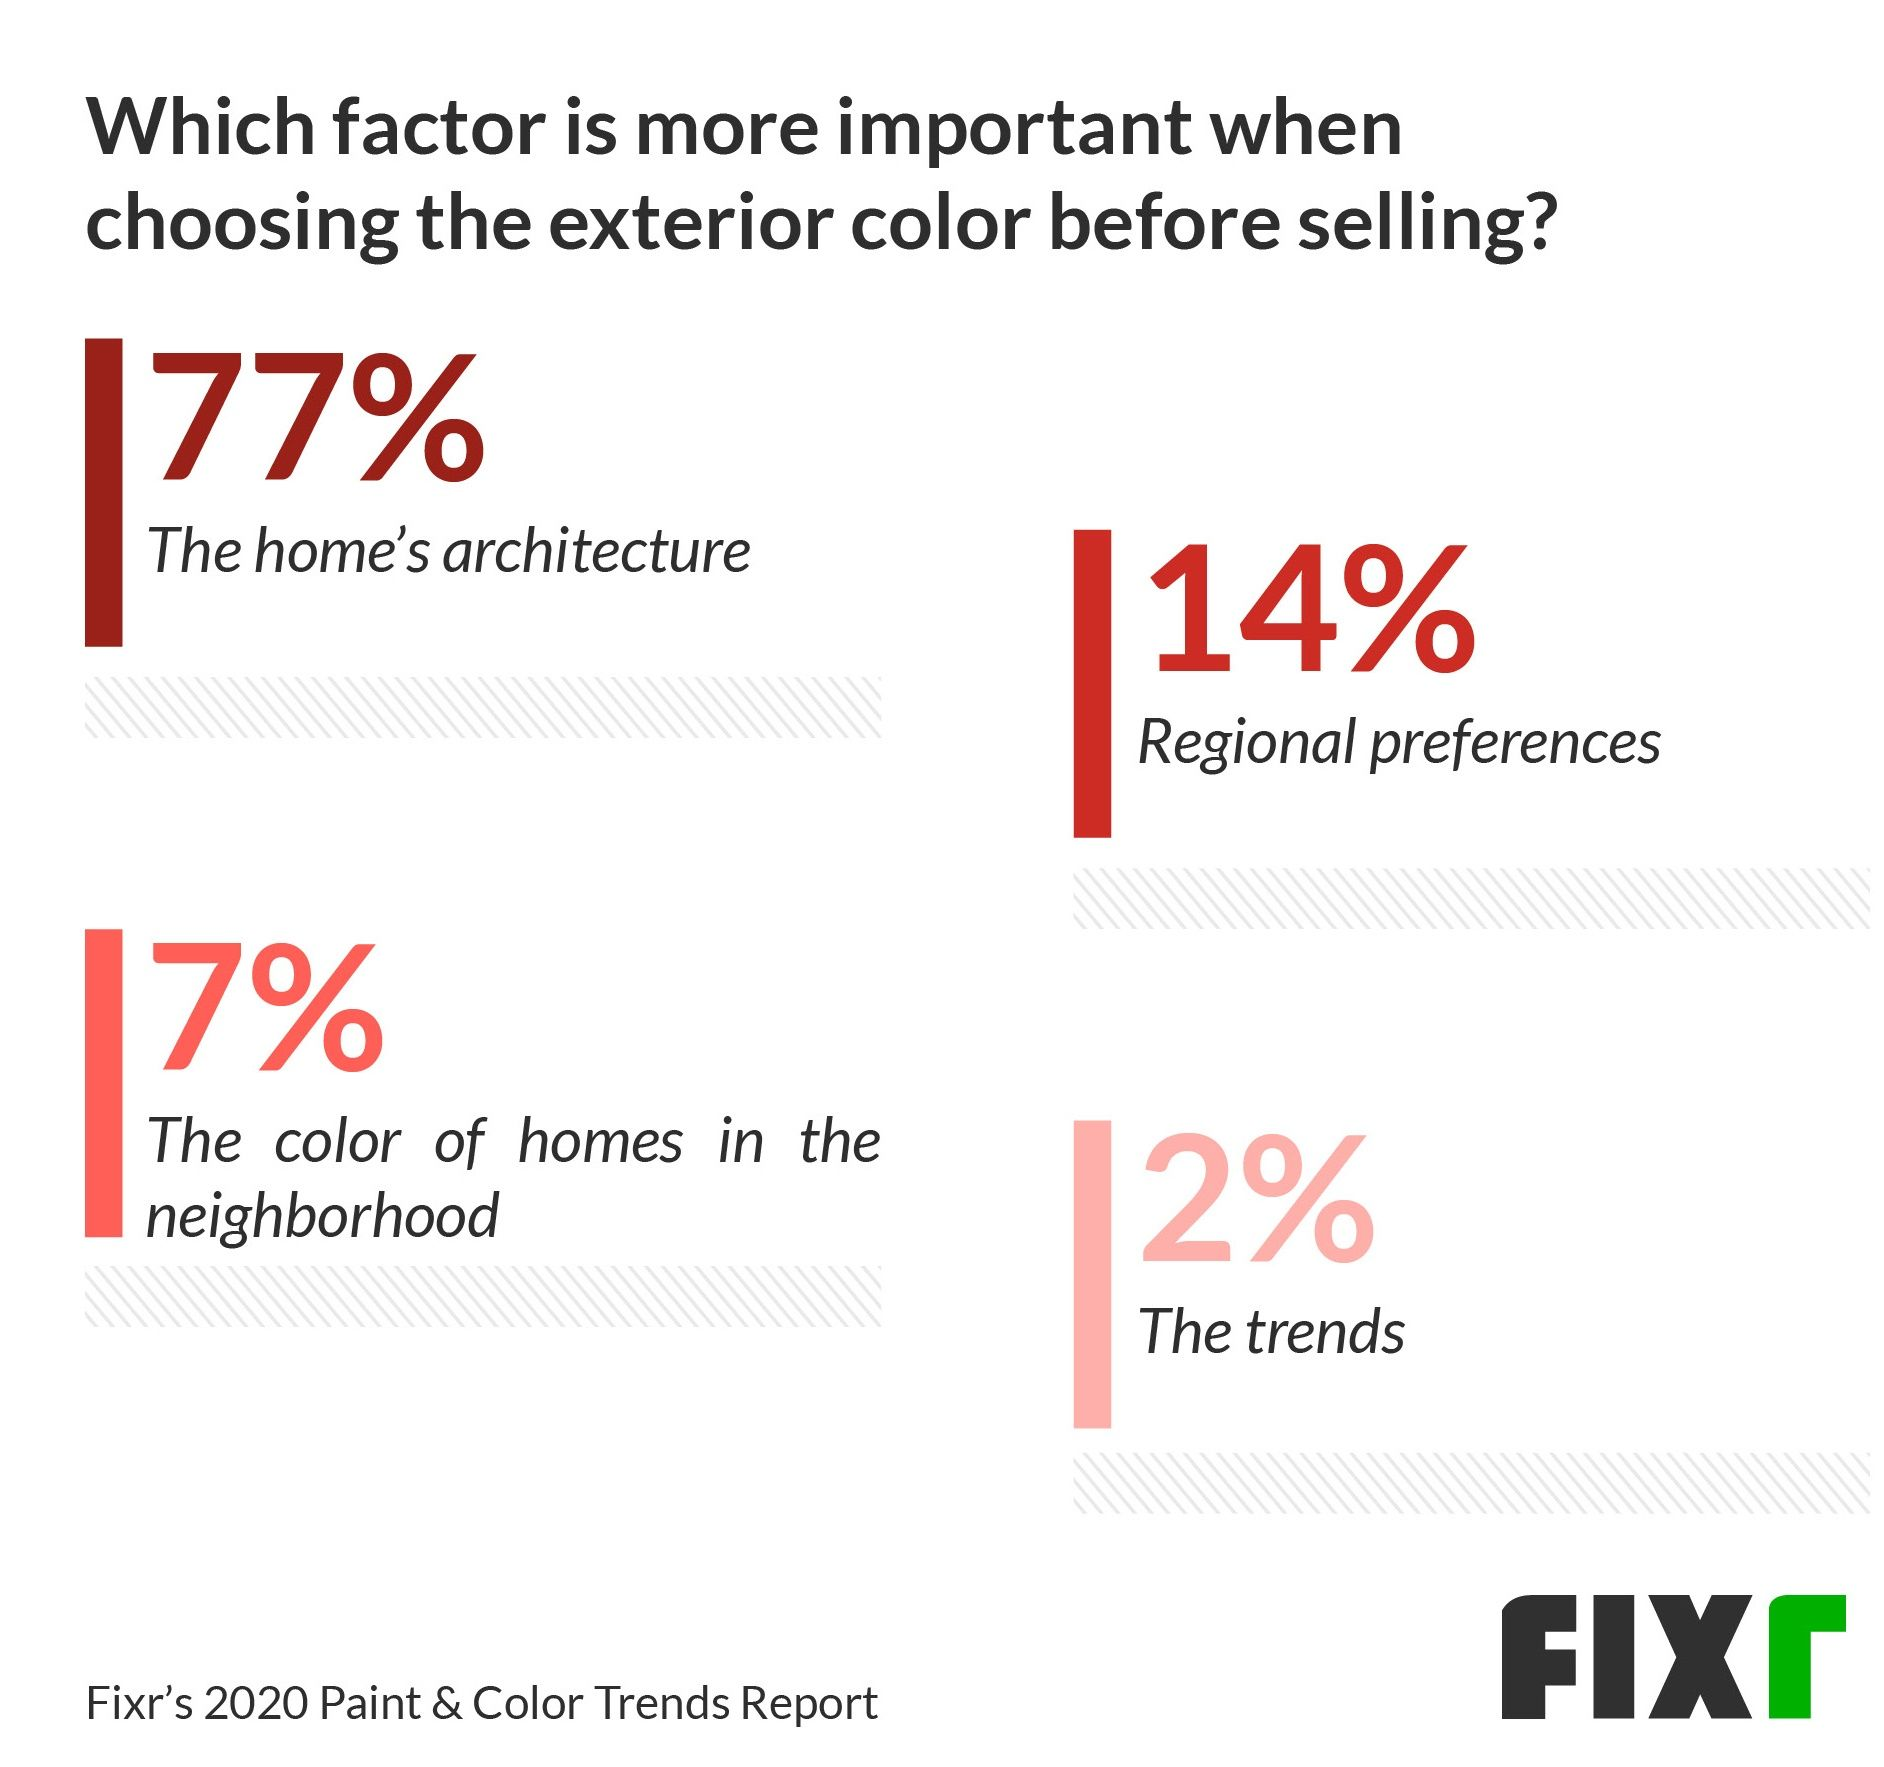 Important factors when choosing the home's exterior color before selling